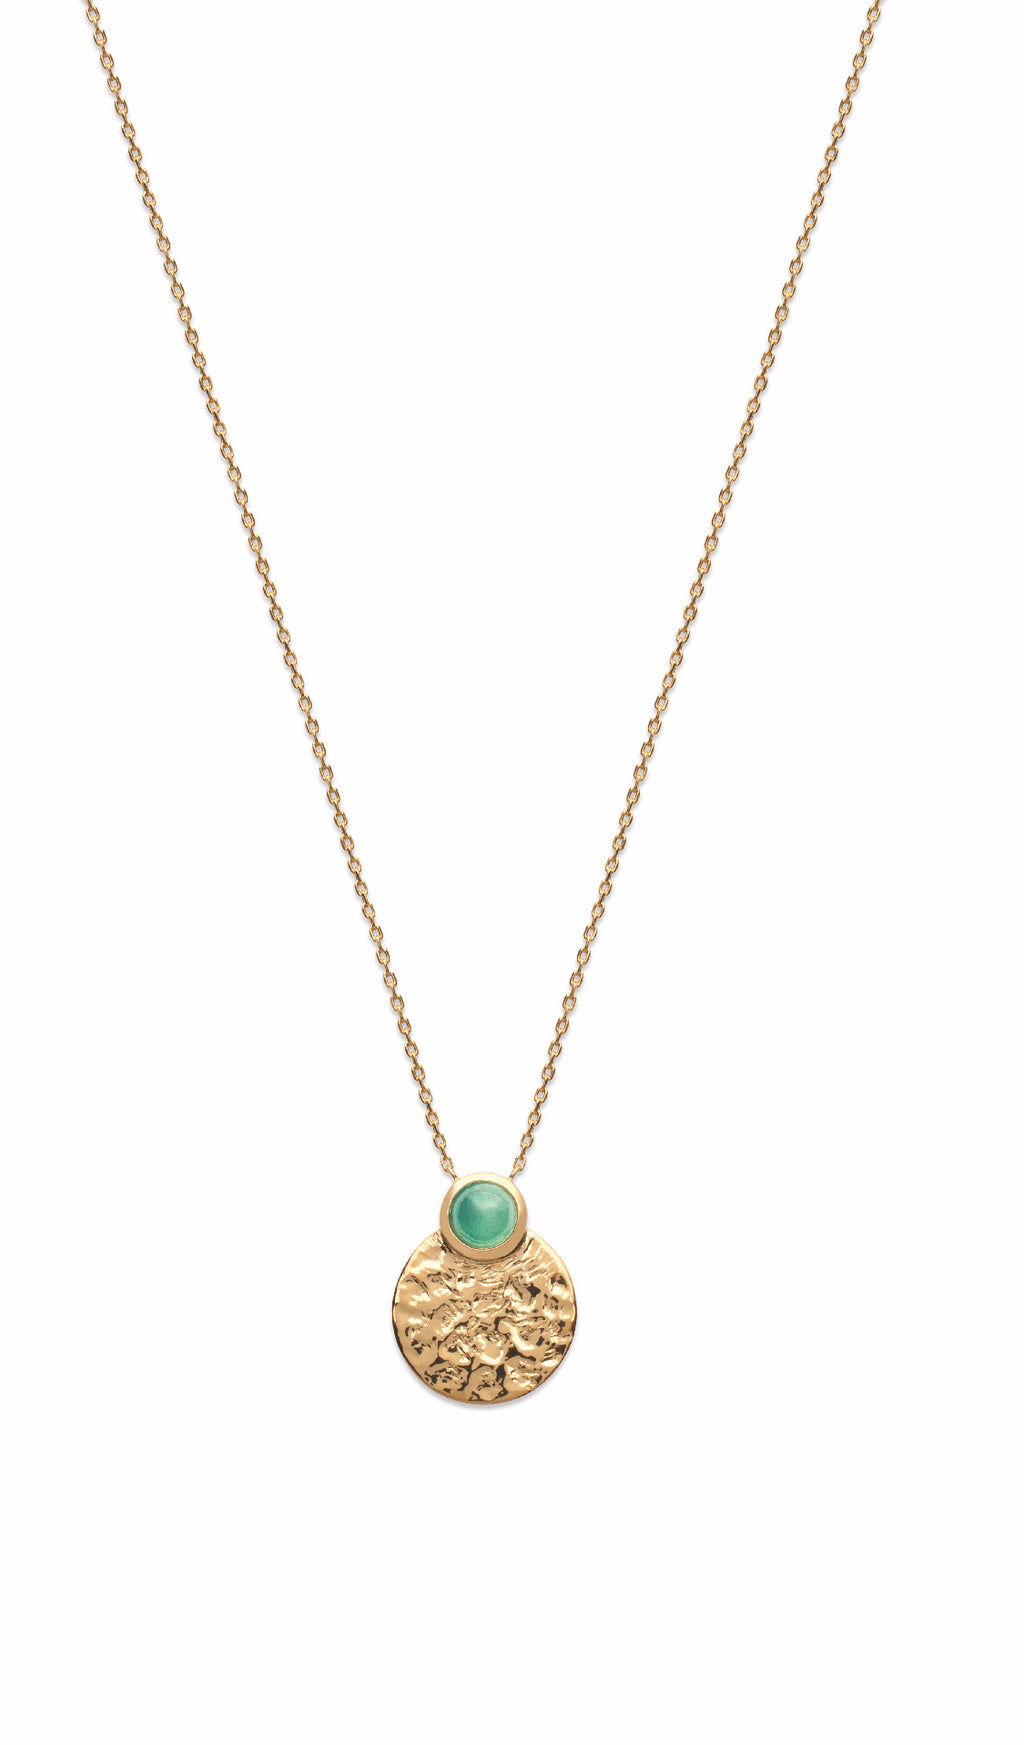 Gold Hammered Disc with Aventurine Necklace